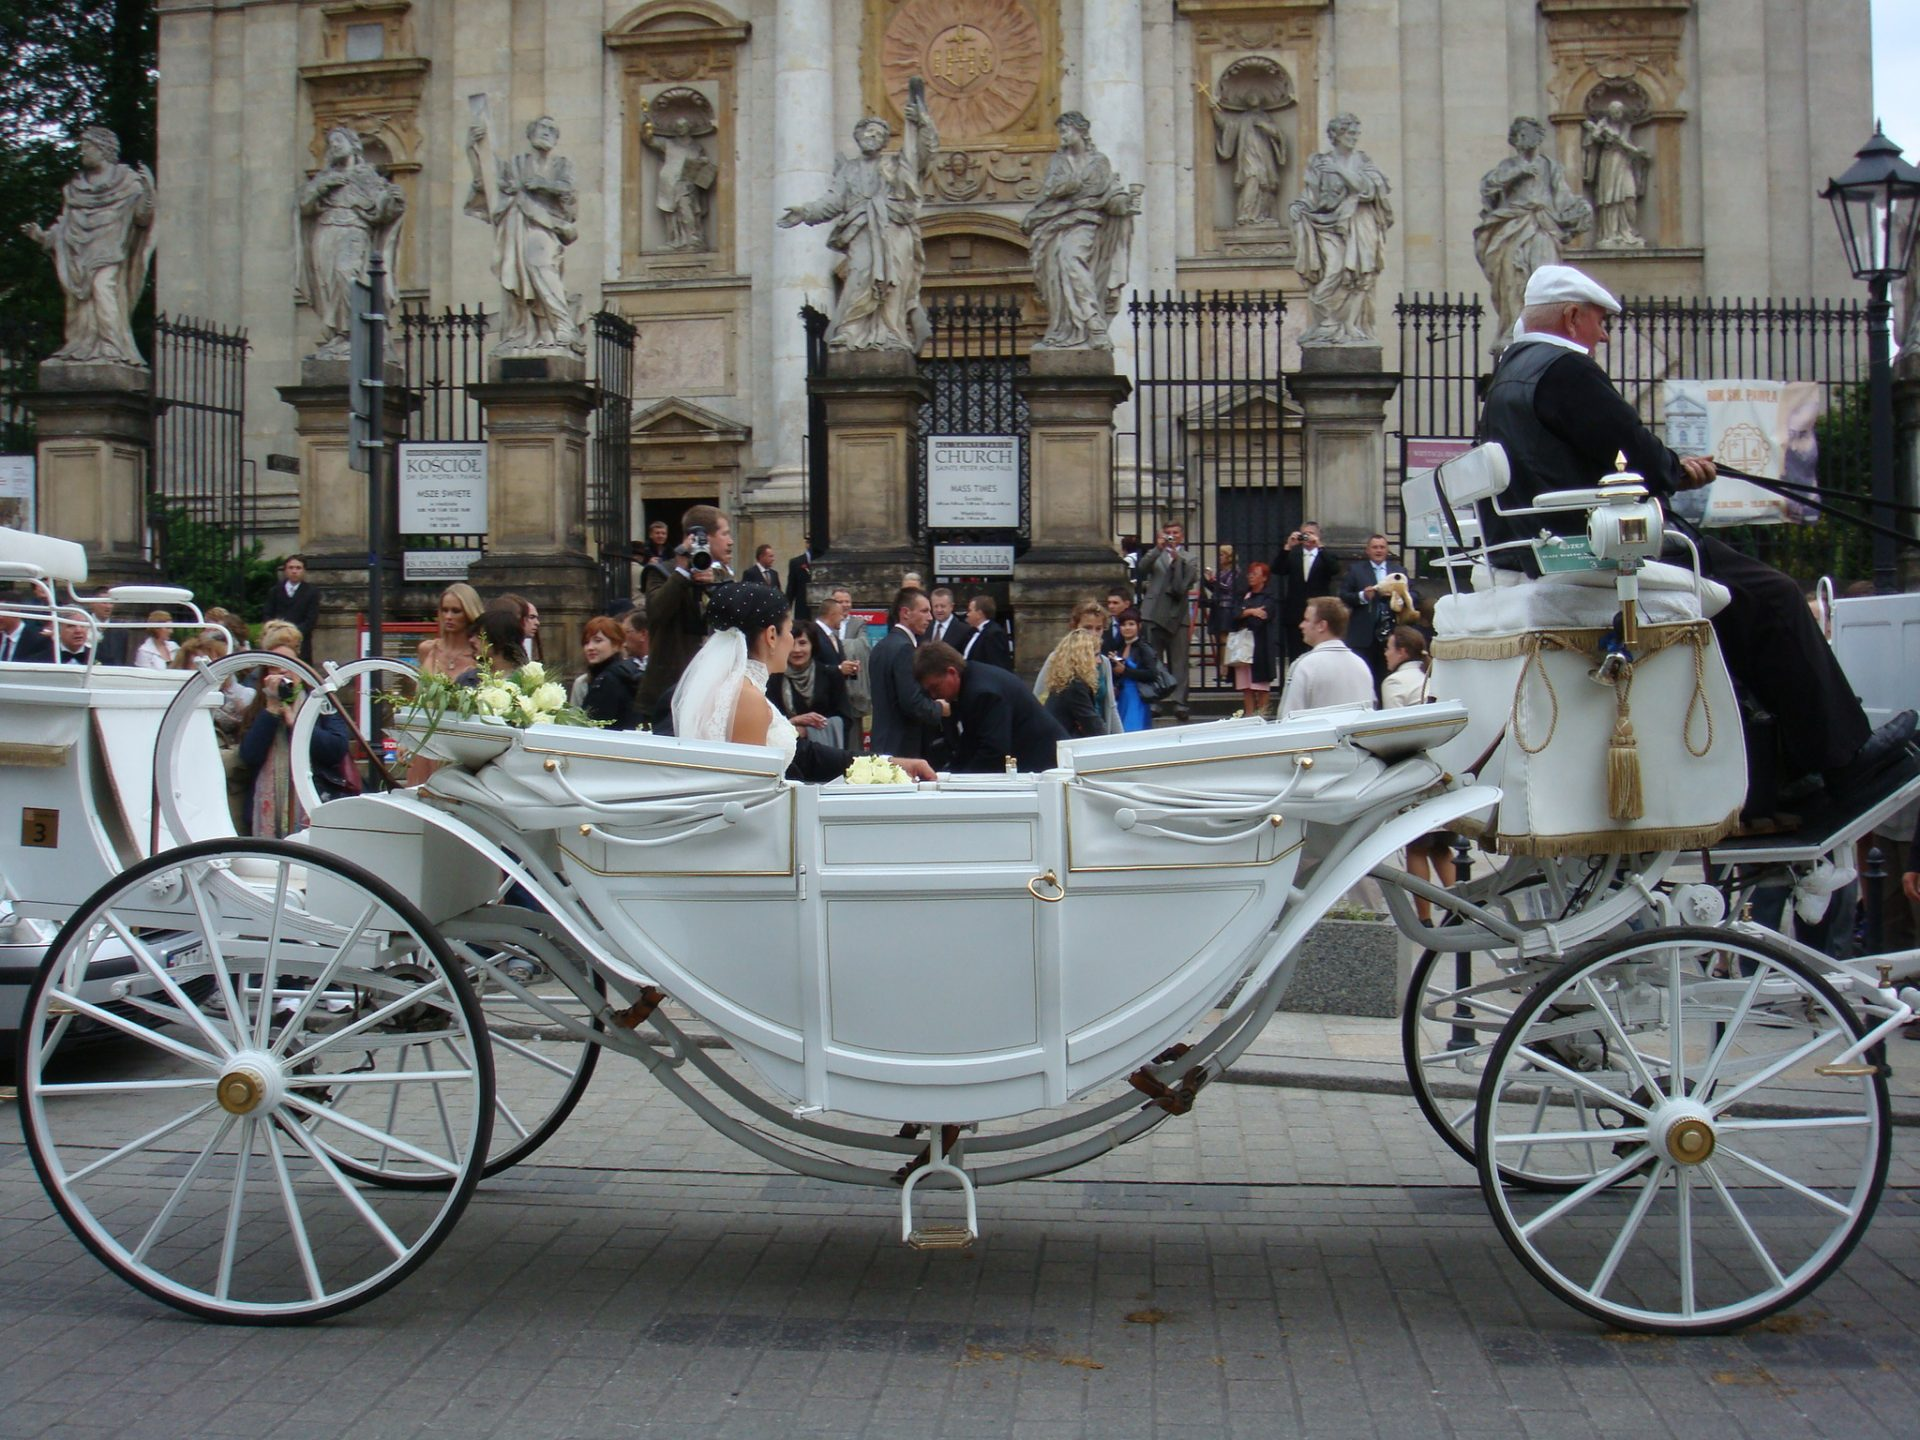 The beautiful wedding couple in the beautiful buggy